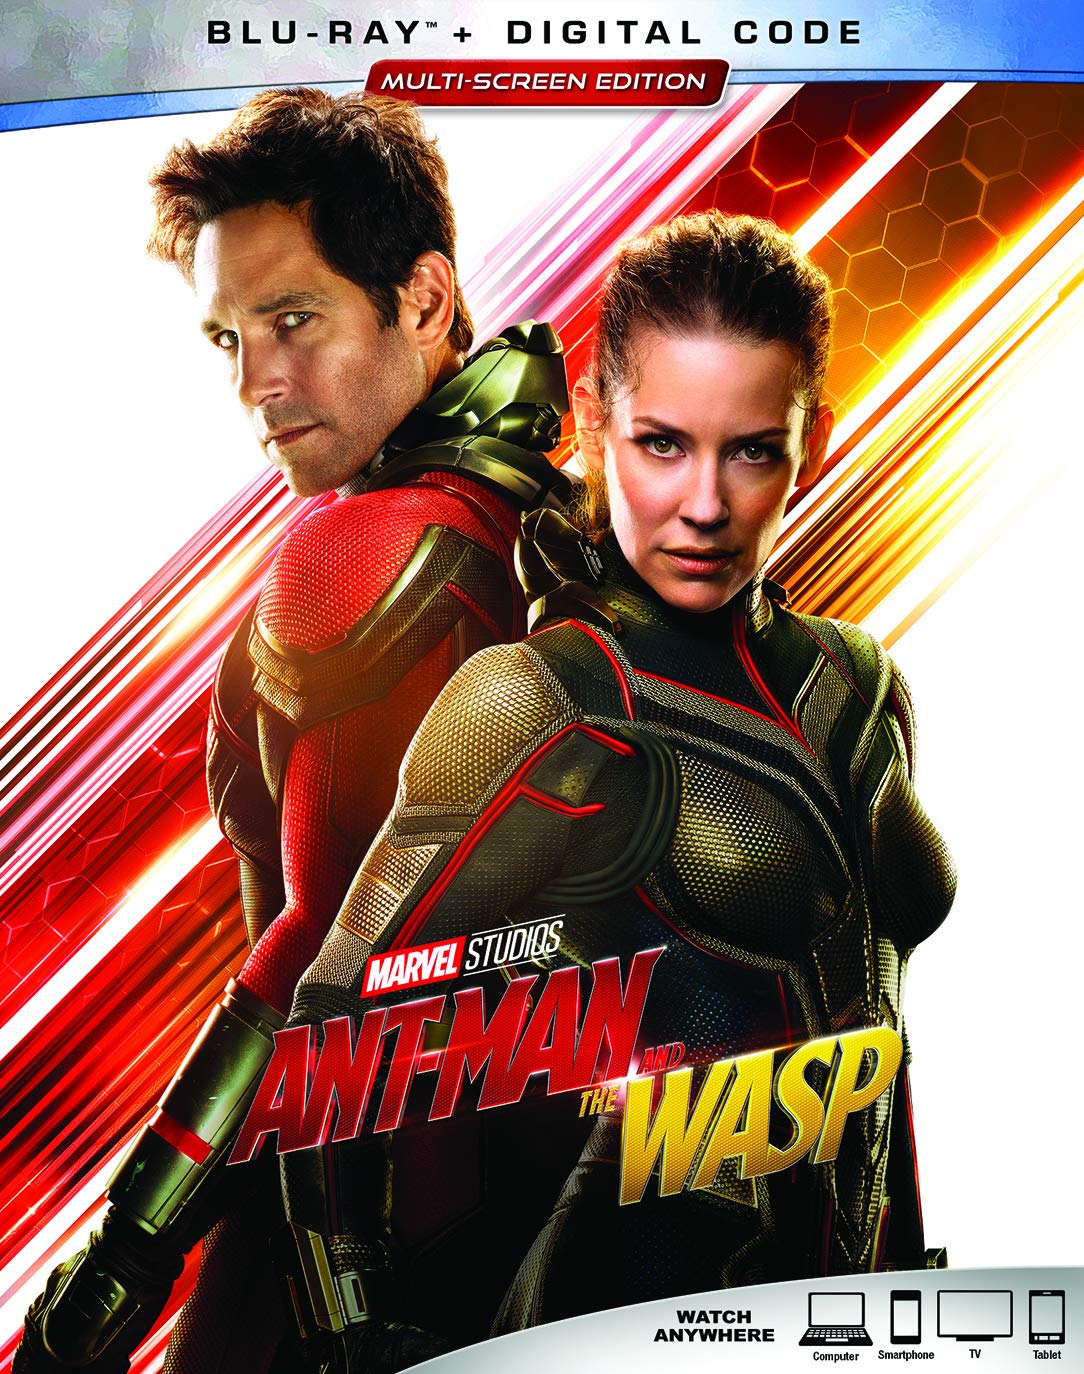 Ant-Man and the Wasp [Blu-ray] Paul Rudd Evangeline Lilly Michael Peña Walton Goggins